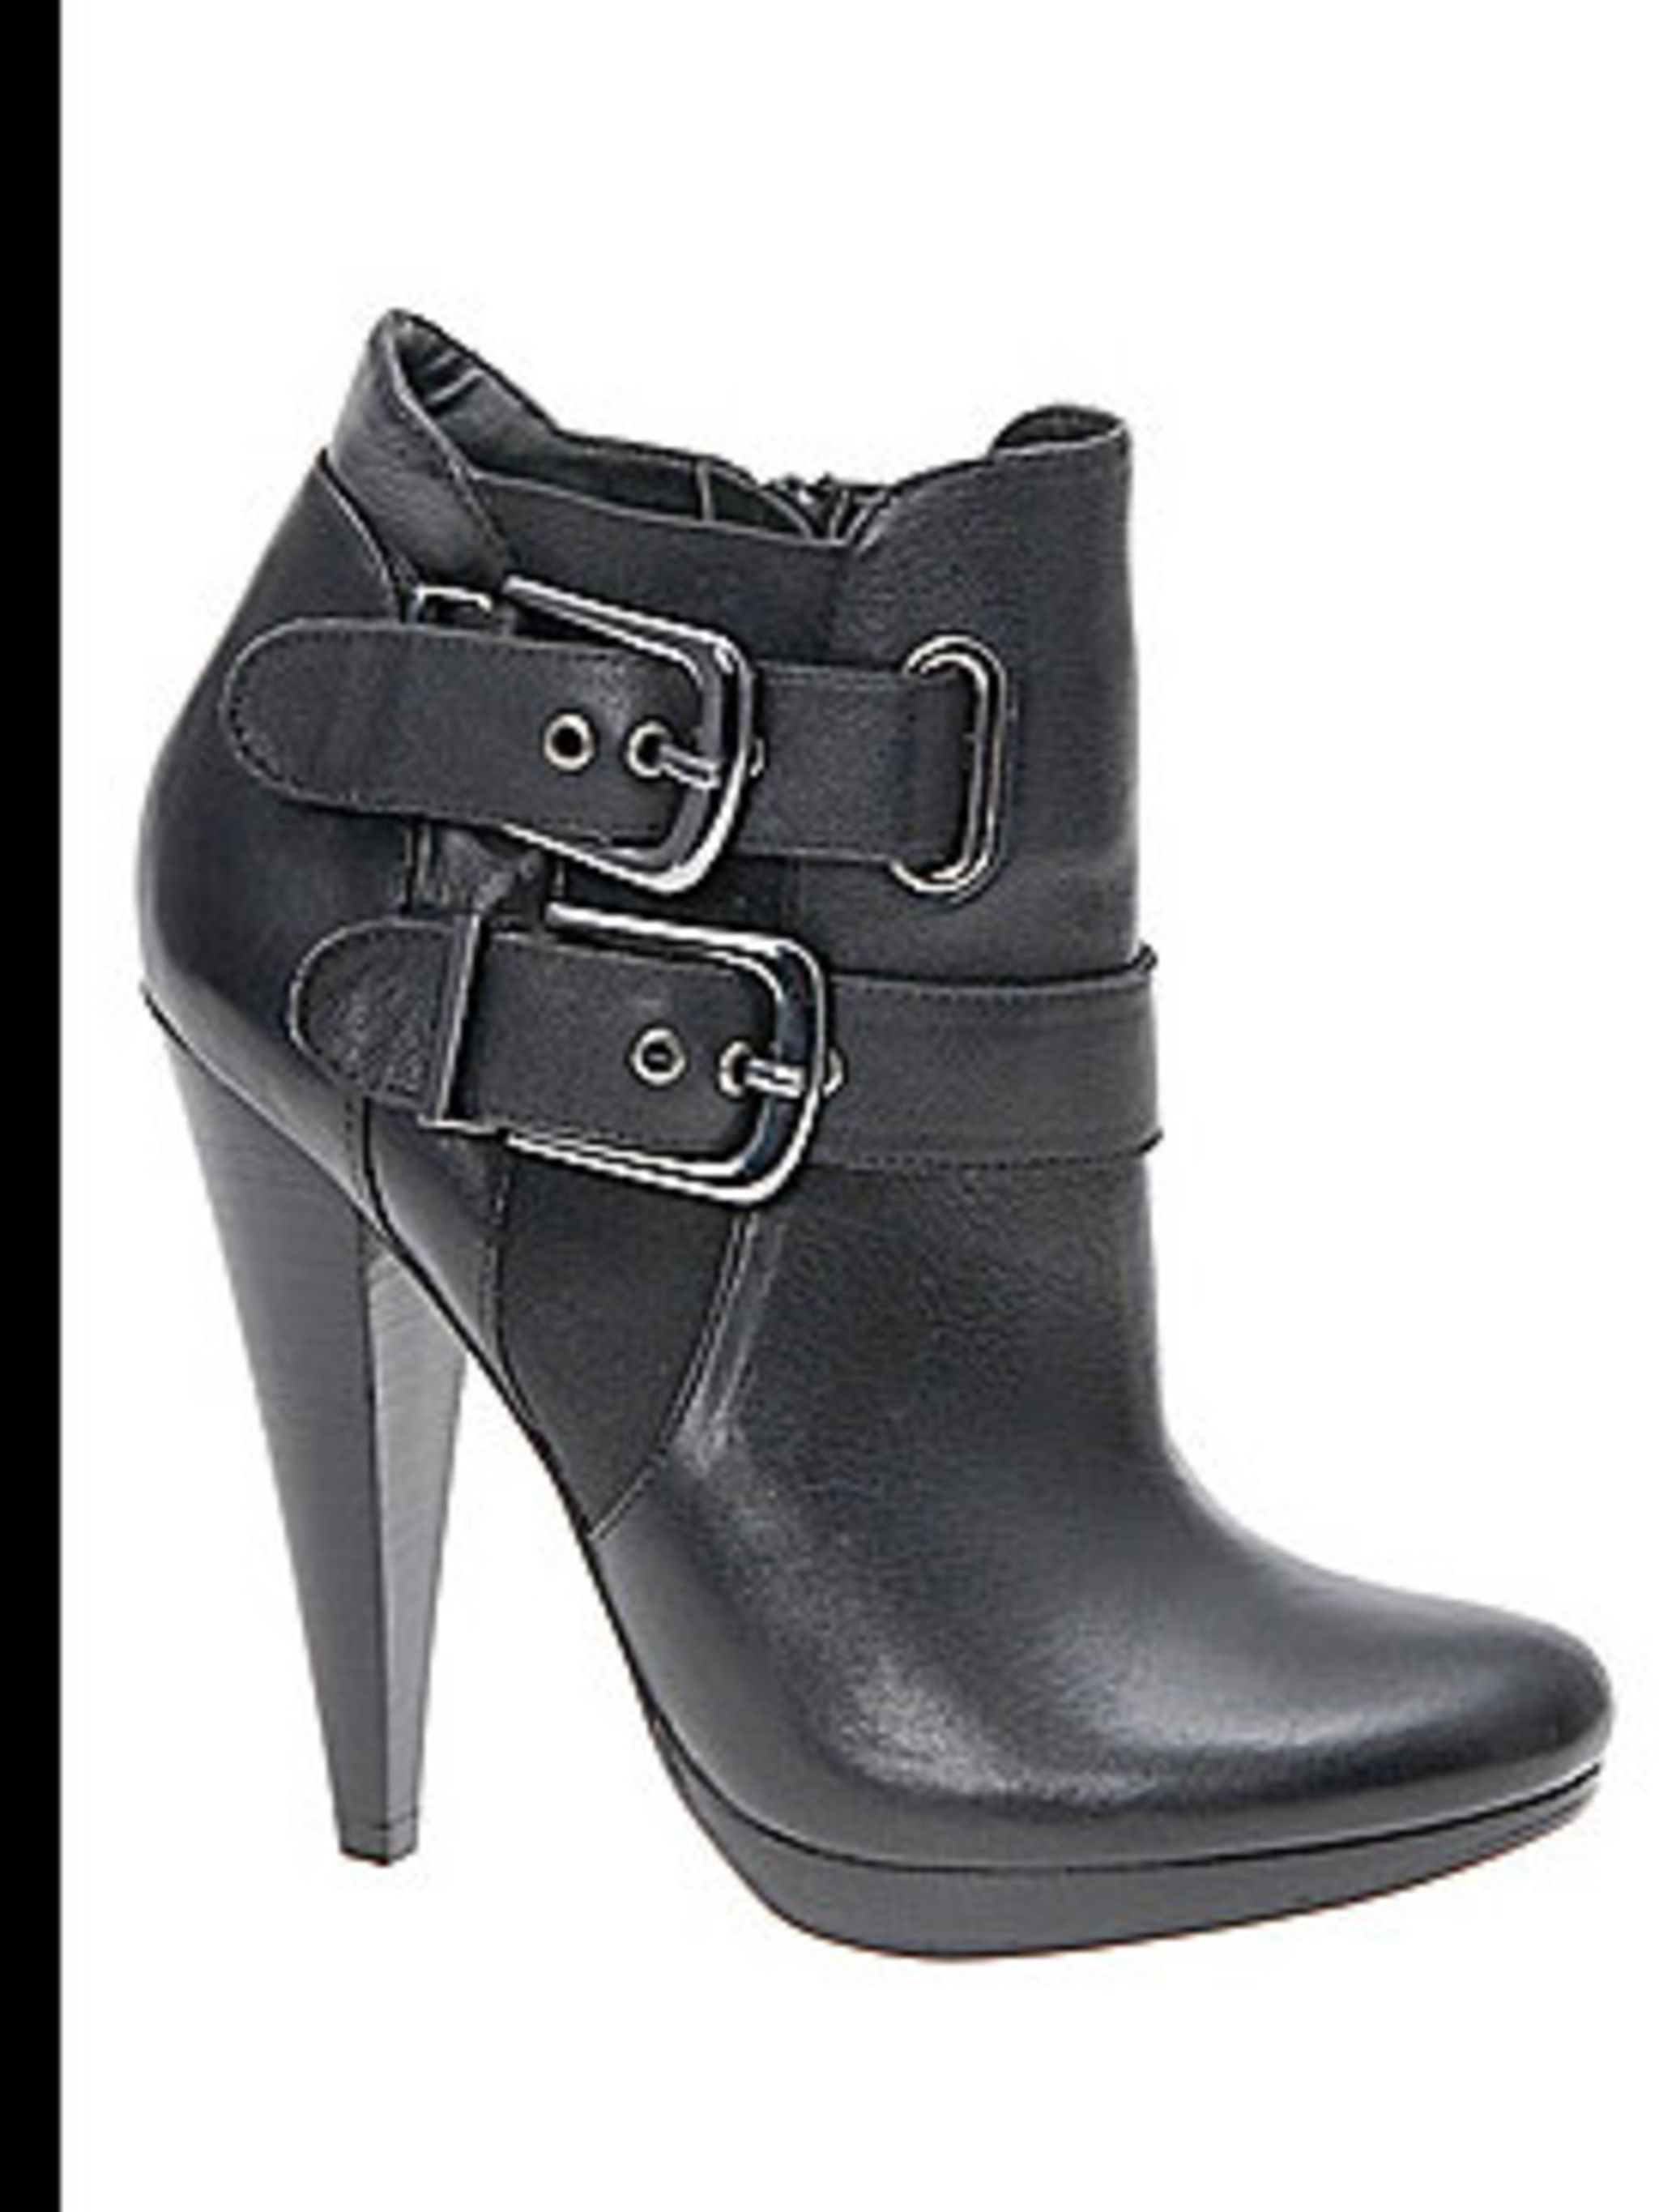 """<p>Leather ankle boots, £85 by <a href=""""http://www.aldoshoes.com/uk/women/boots/ankle-boots/75977764-huckeby/97"""">Aldo</a></p>"""